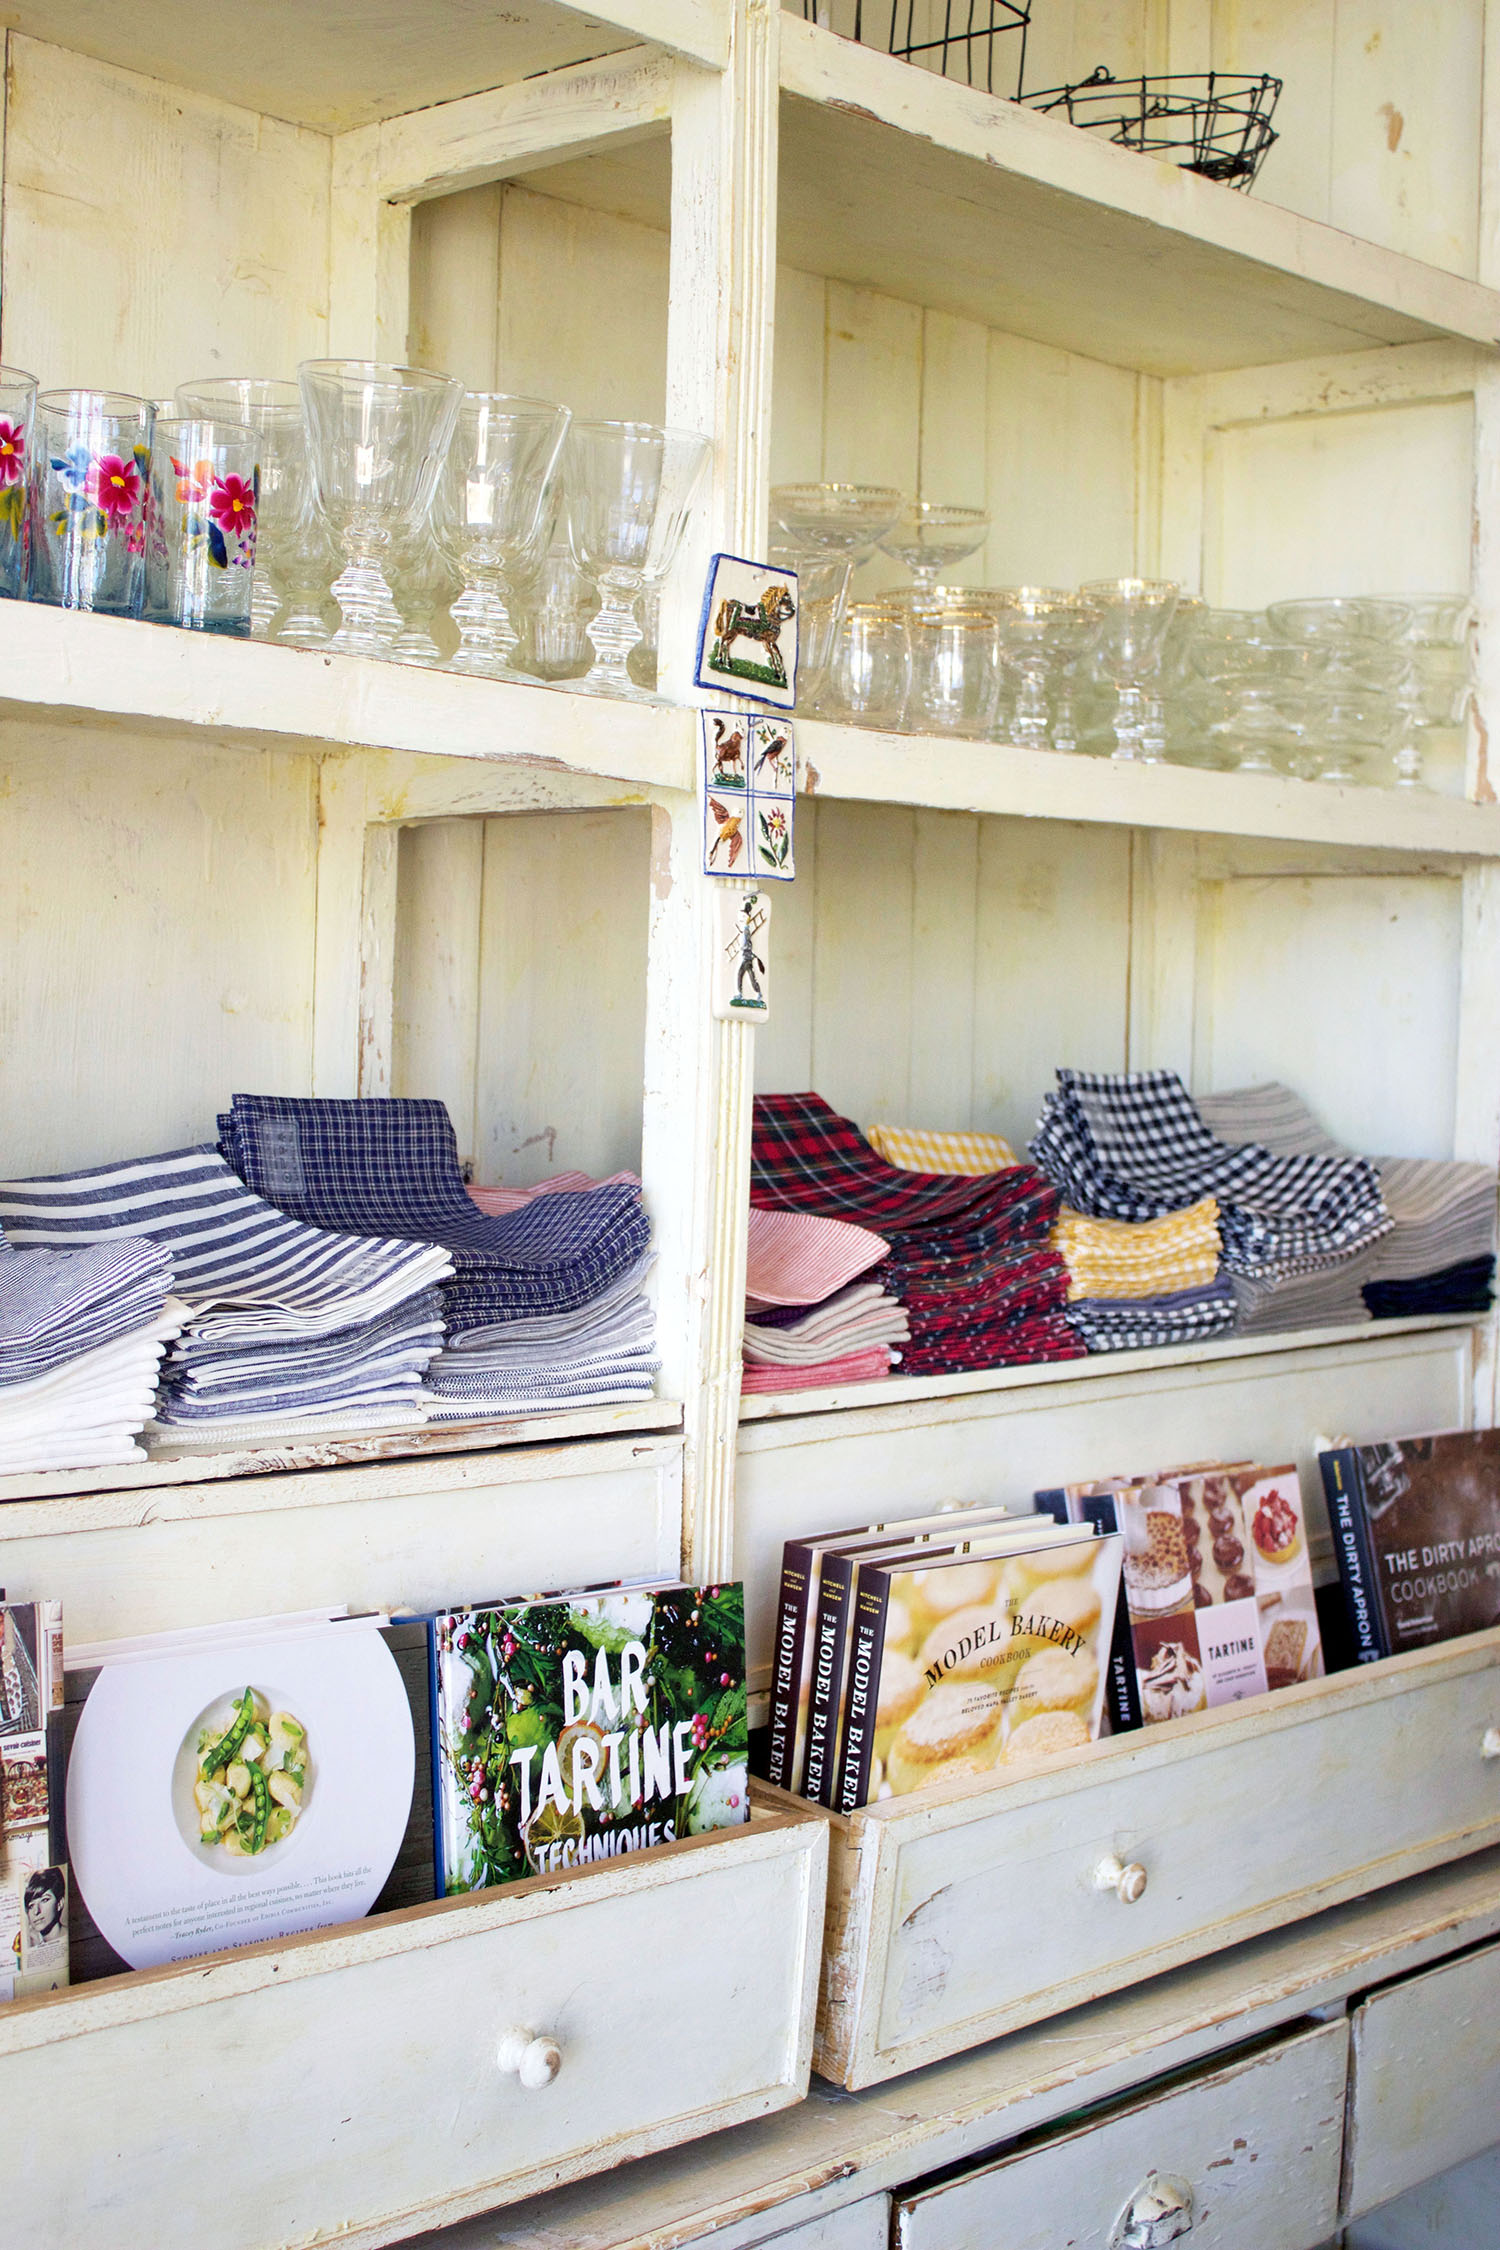 Cookbooks and rustic wares to entertain with.